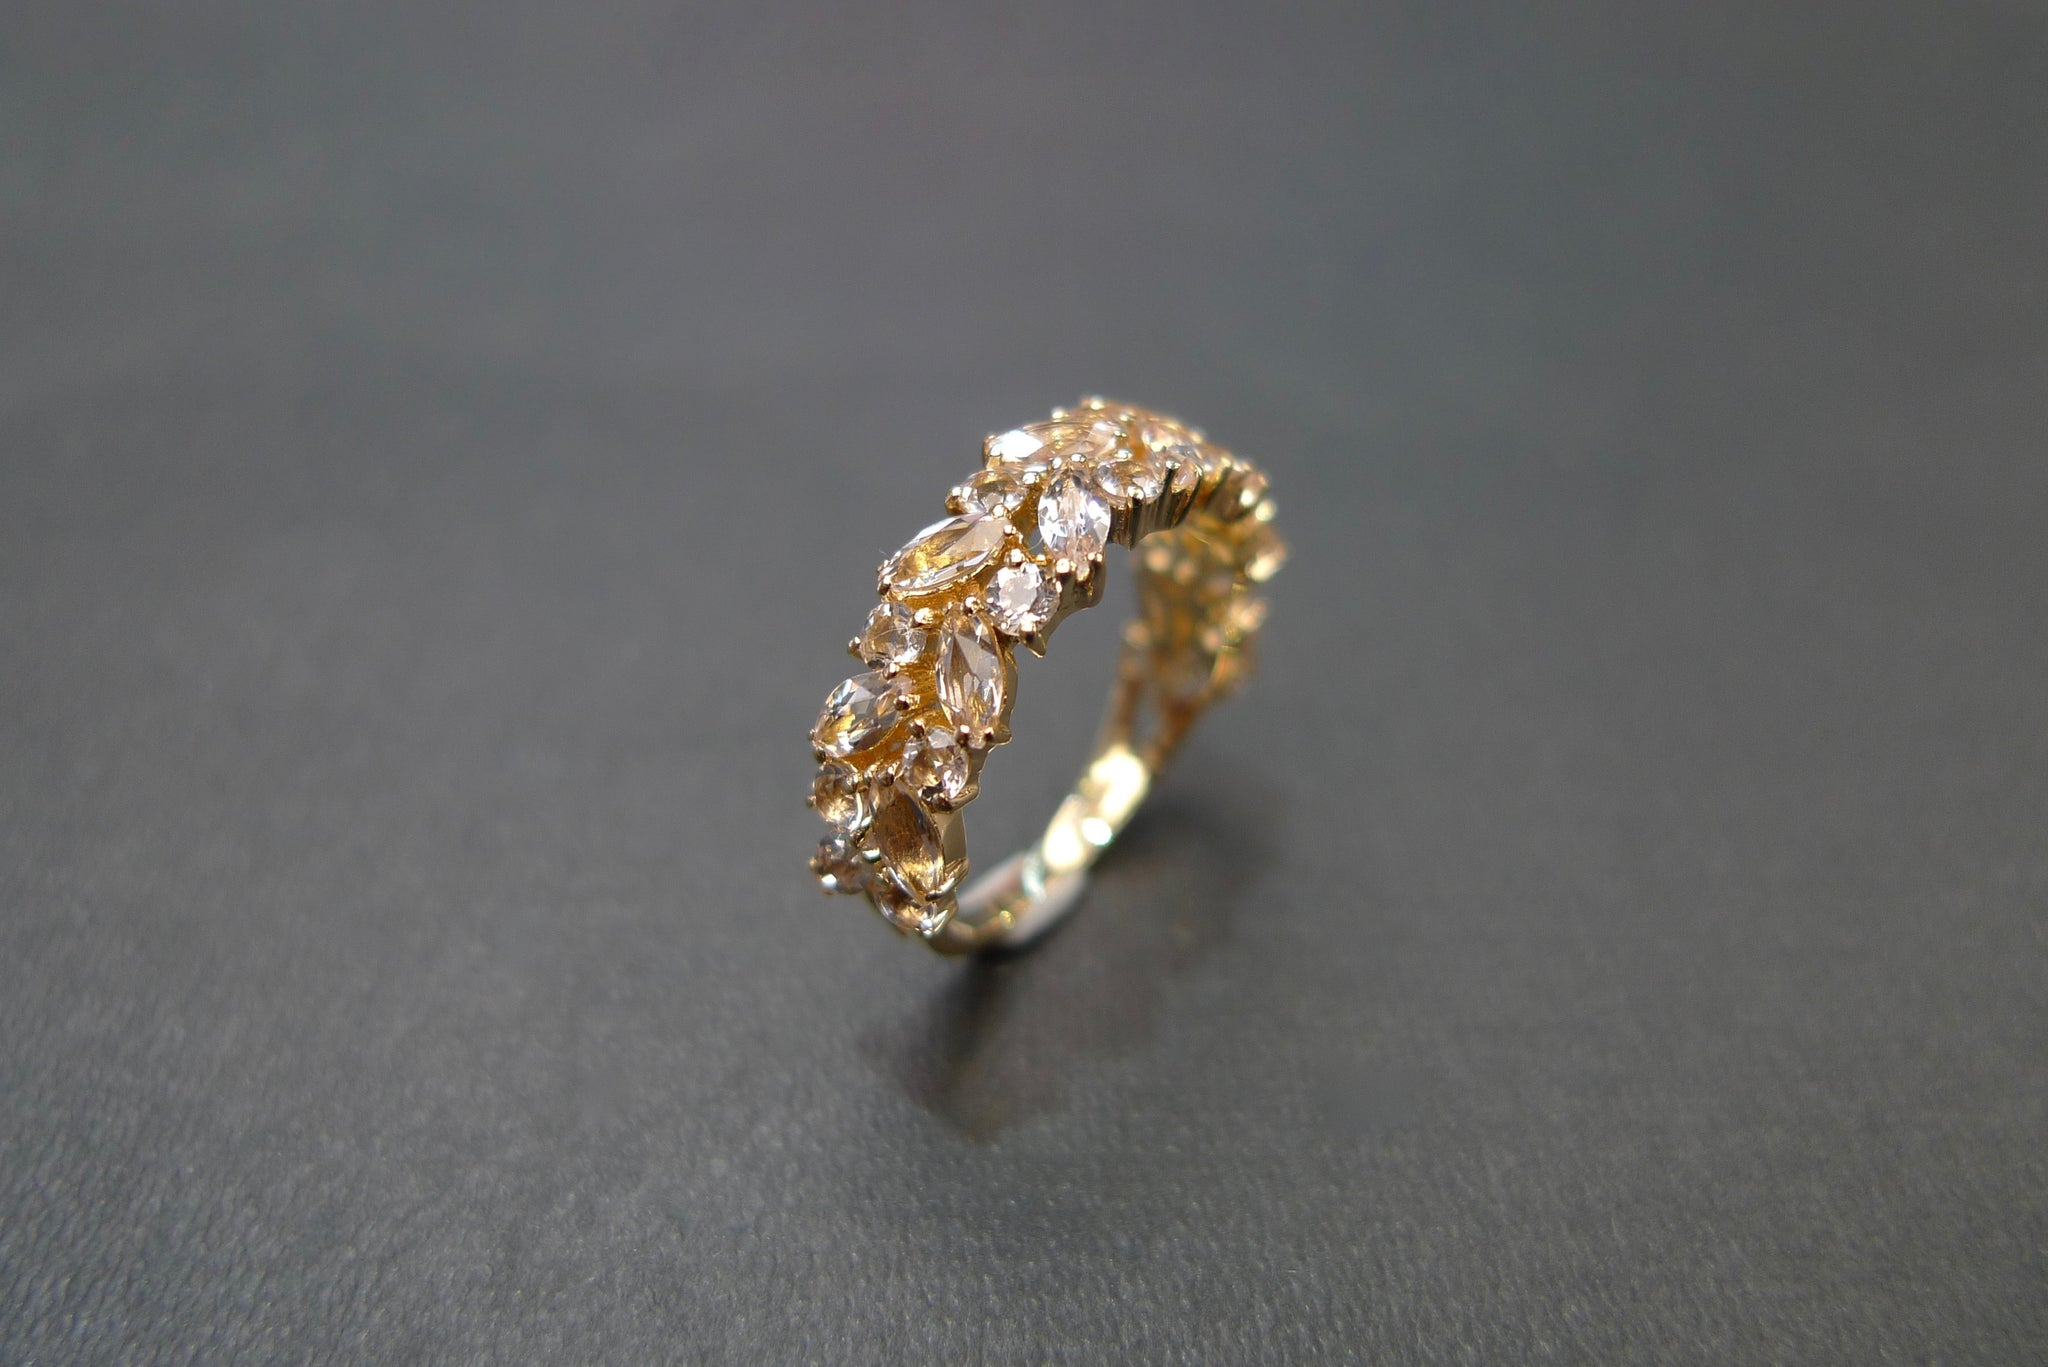 Champagne Marquise Morganite Half Eternity Ring in 14K Yellow Gold - HN JEWELRY